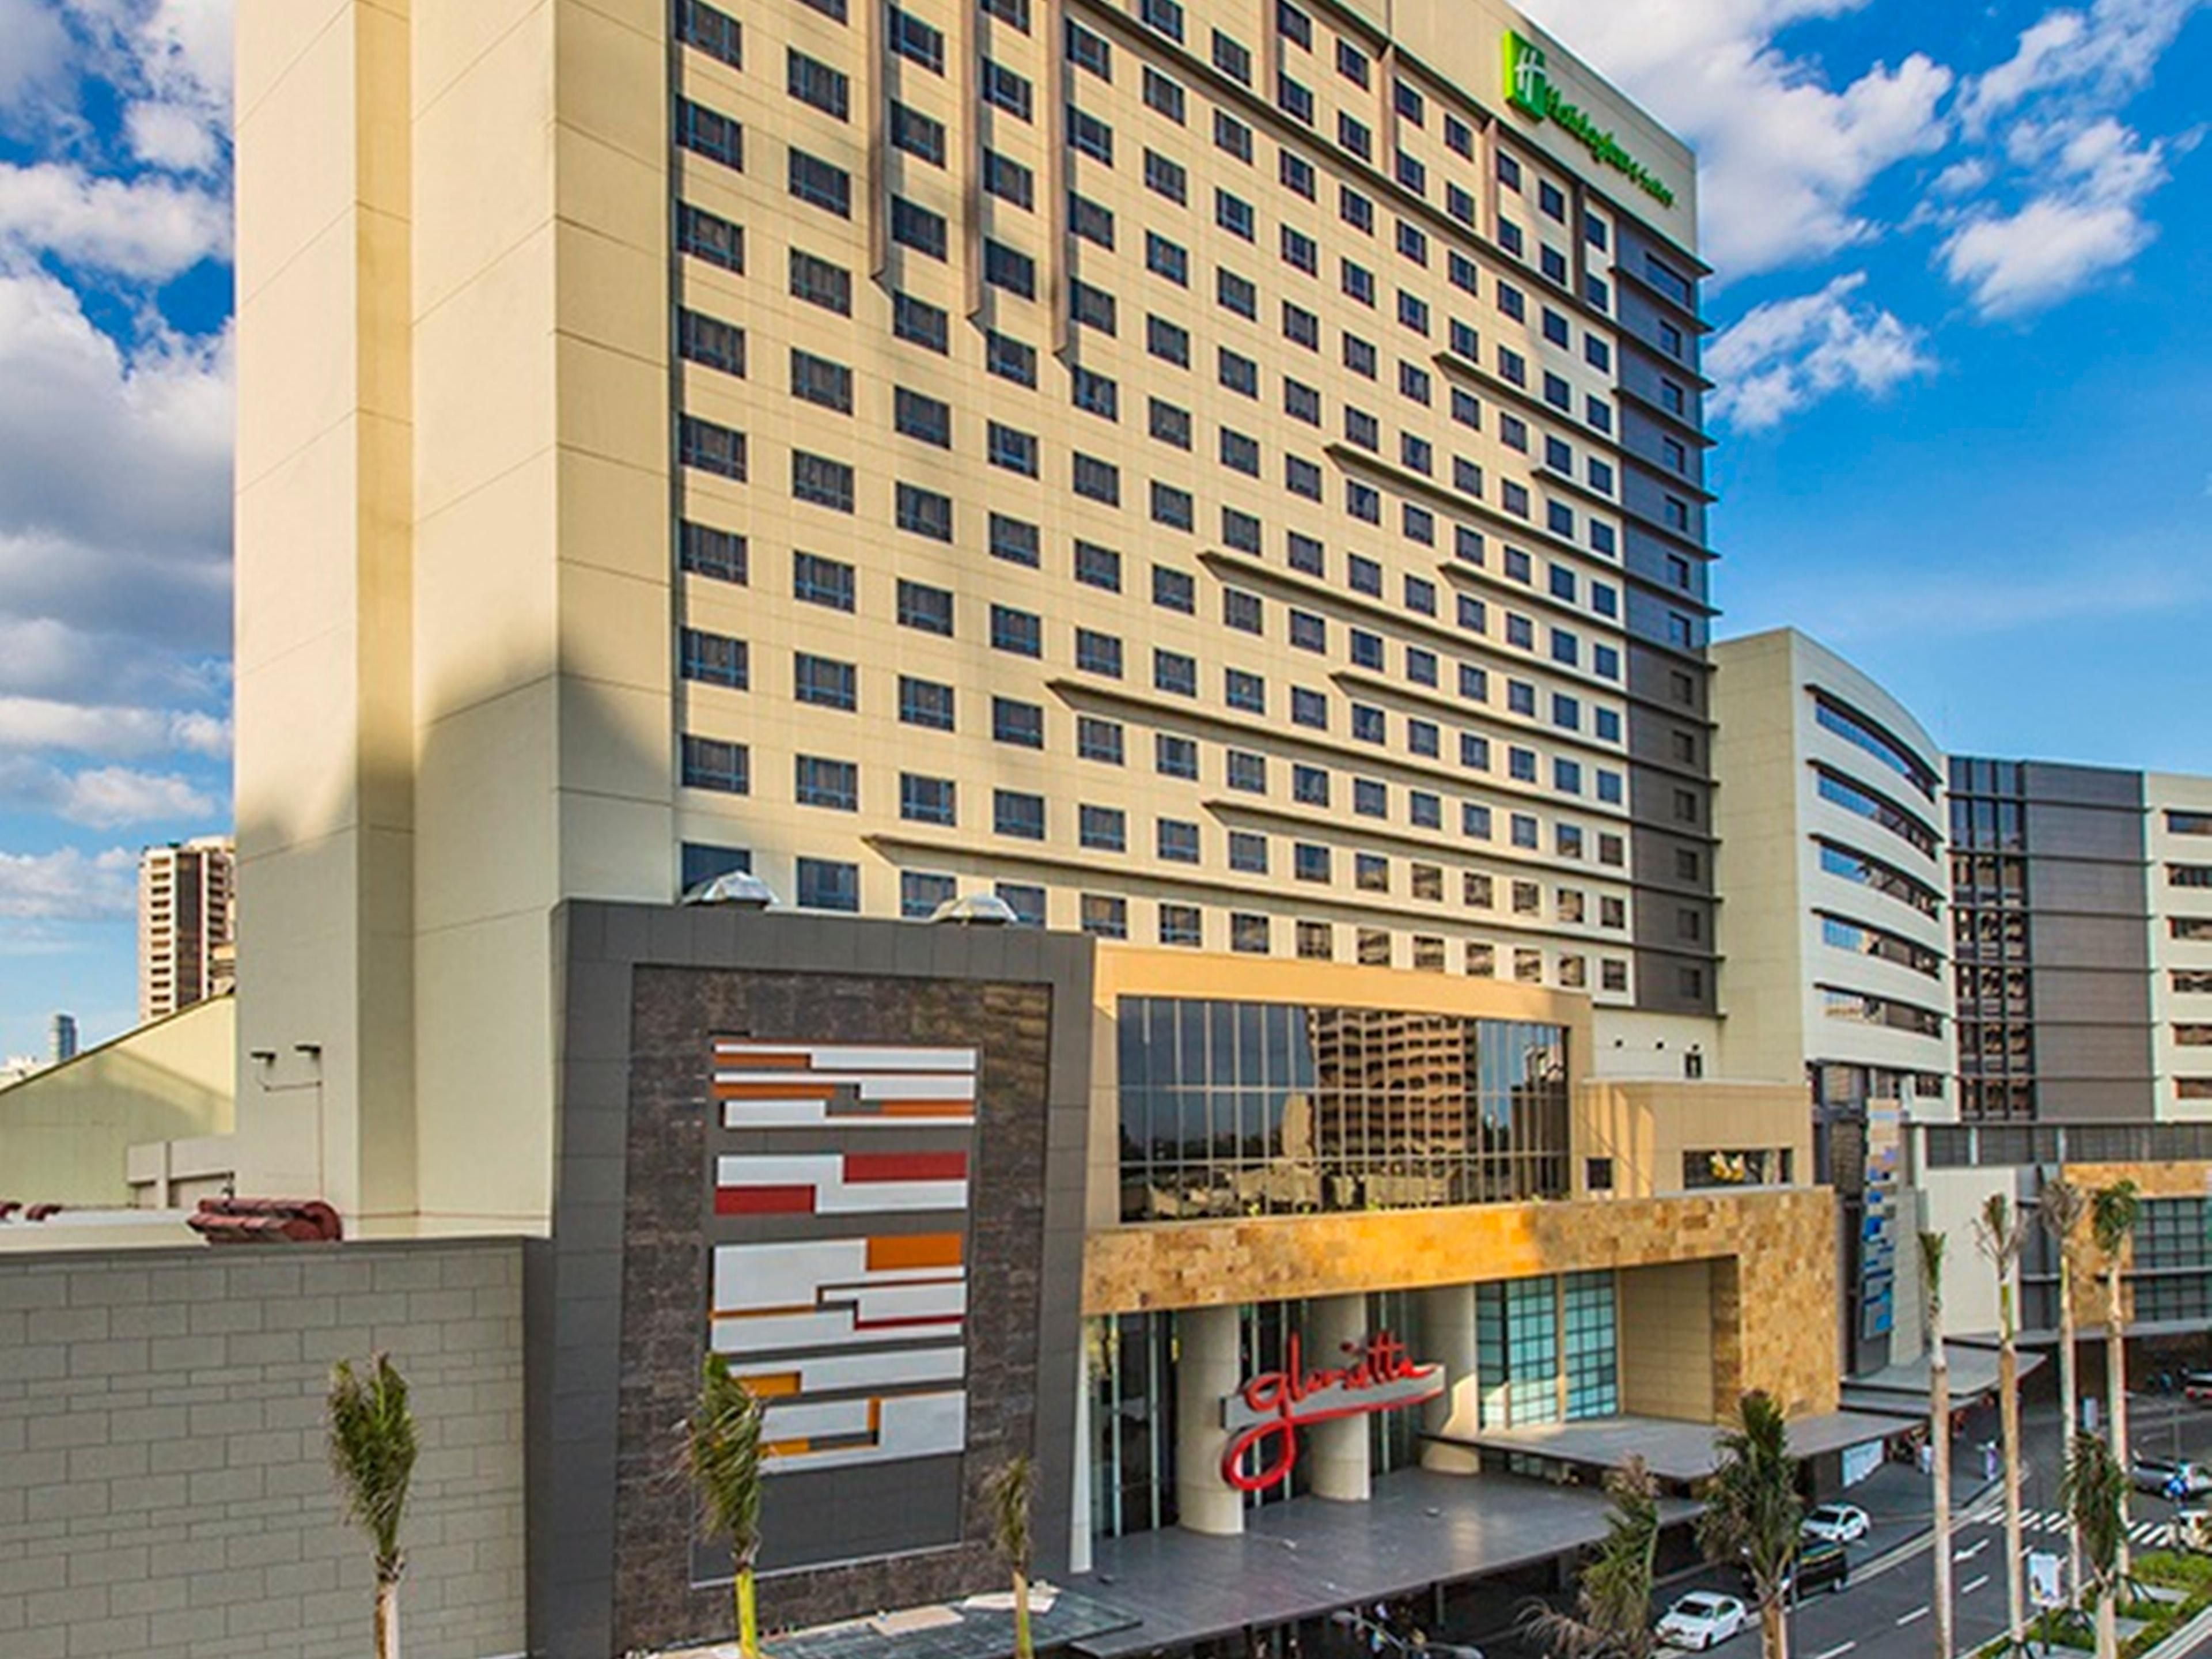 The hotel is directly connected to Glorietta Mall